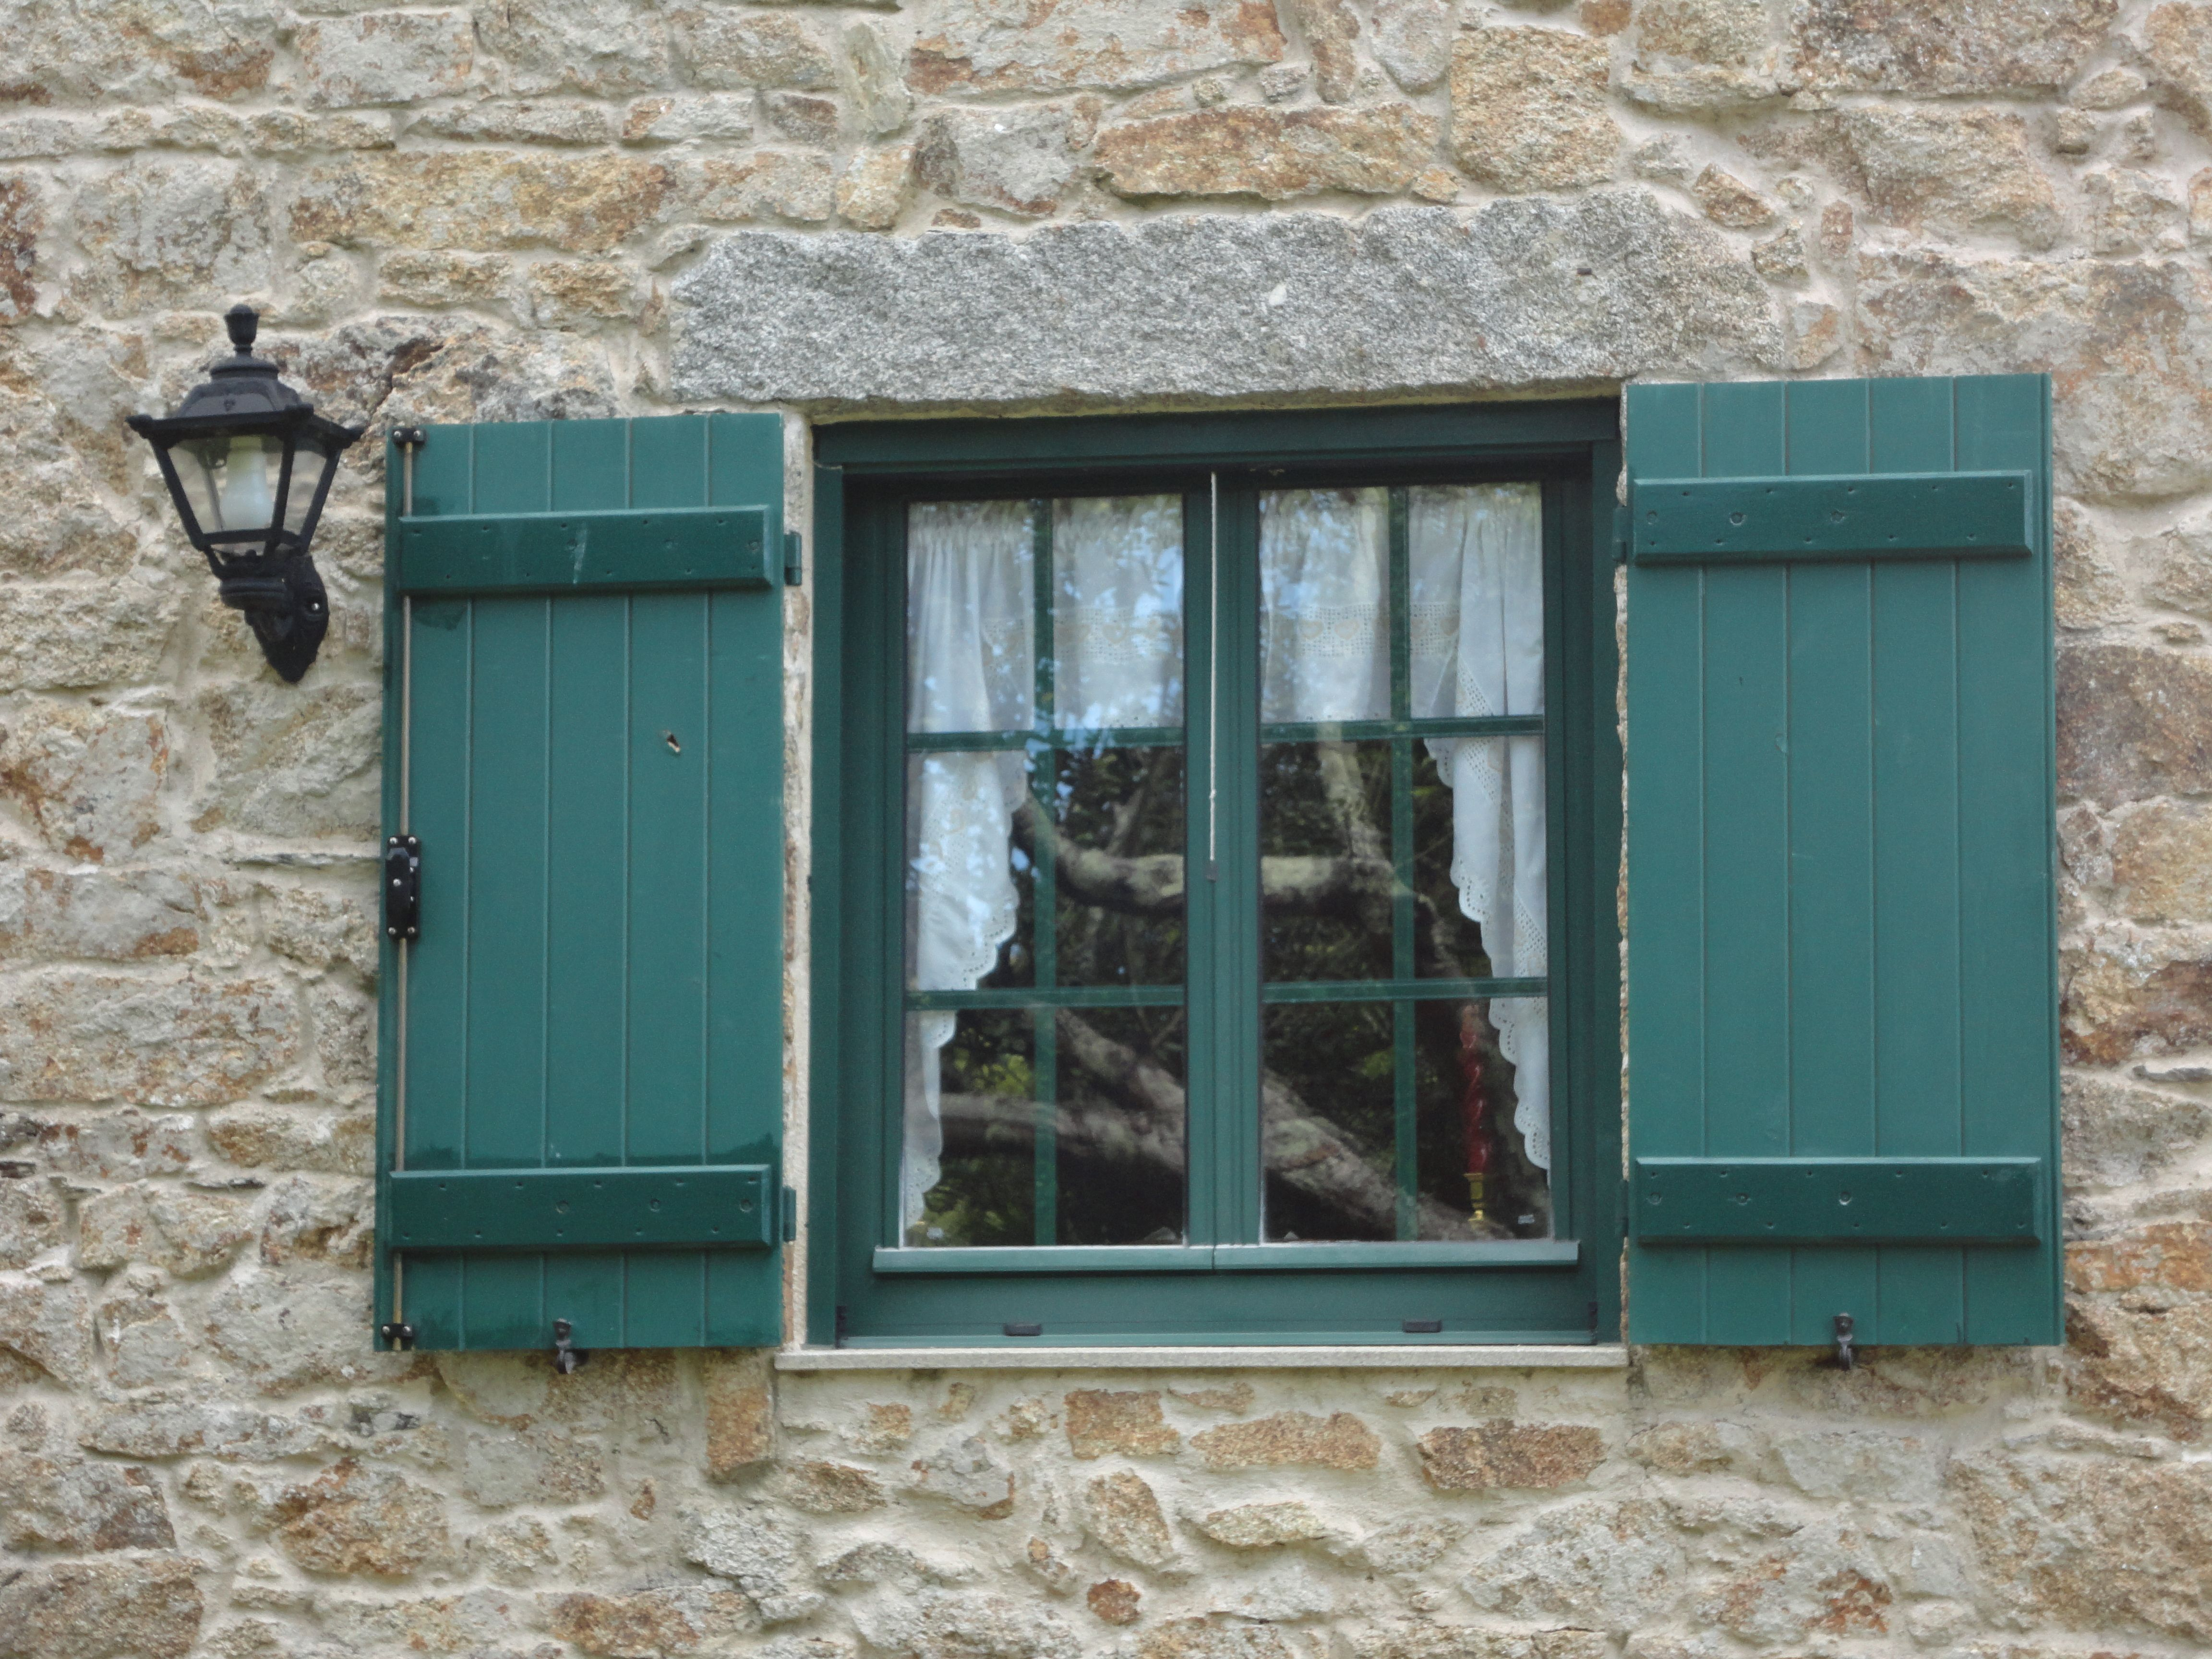 Window of my parents' house in Cervás.  Built by my grandfather and great-uncles, it is almost 100 yrs. old  Love that apple tree you see reflected on the window - I used to climb it!  We all had a special tree to climb that we claimed our own - this one was mine =)